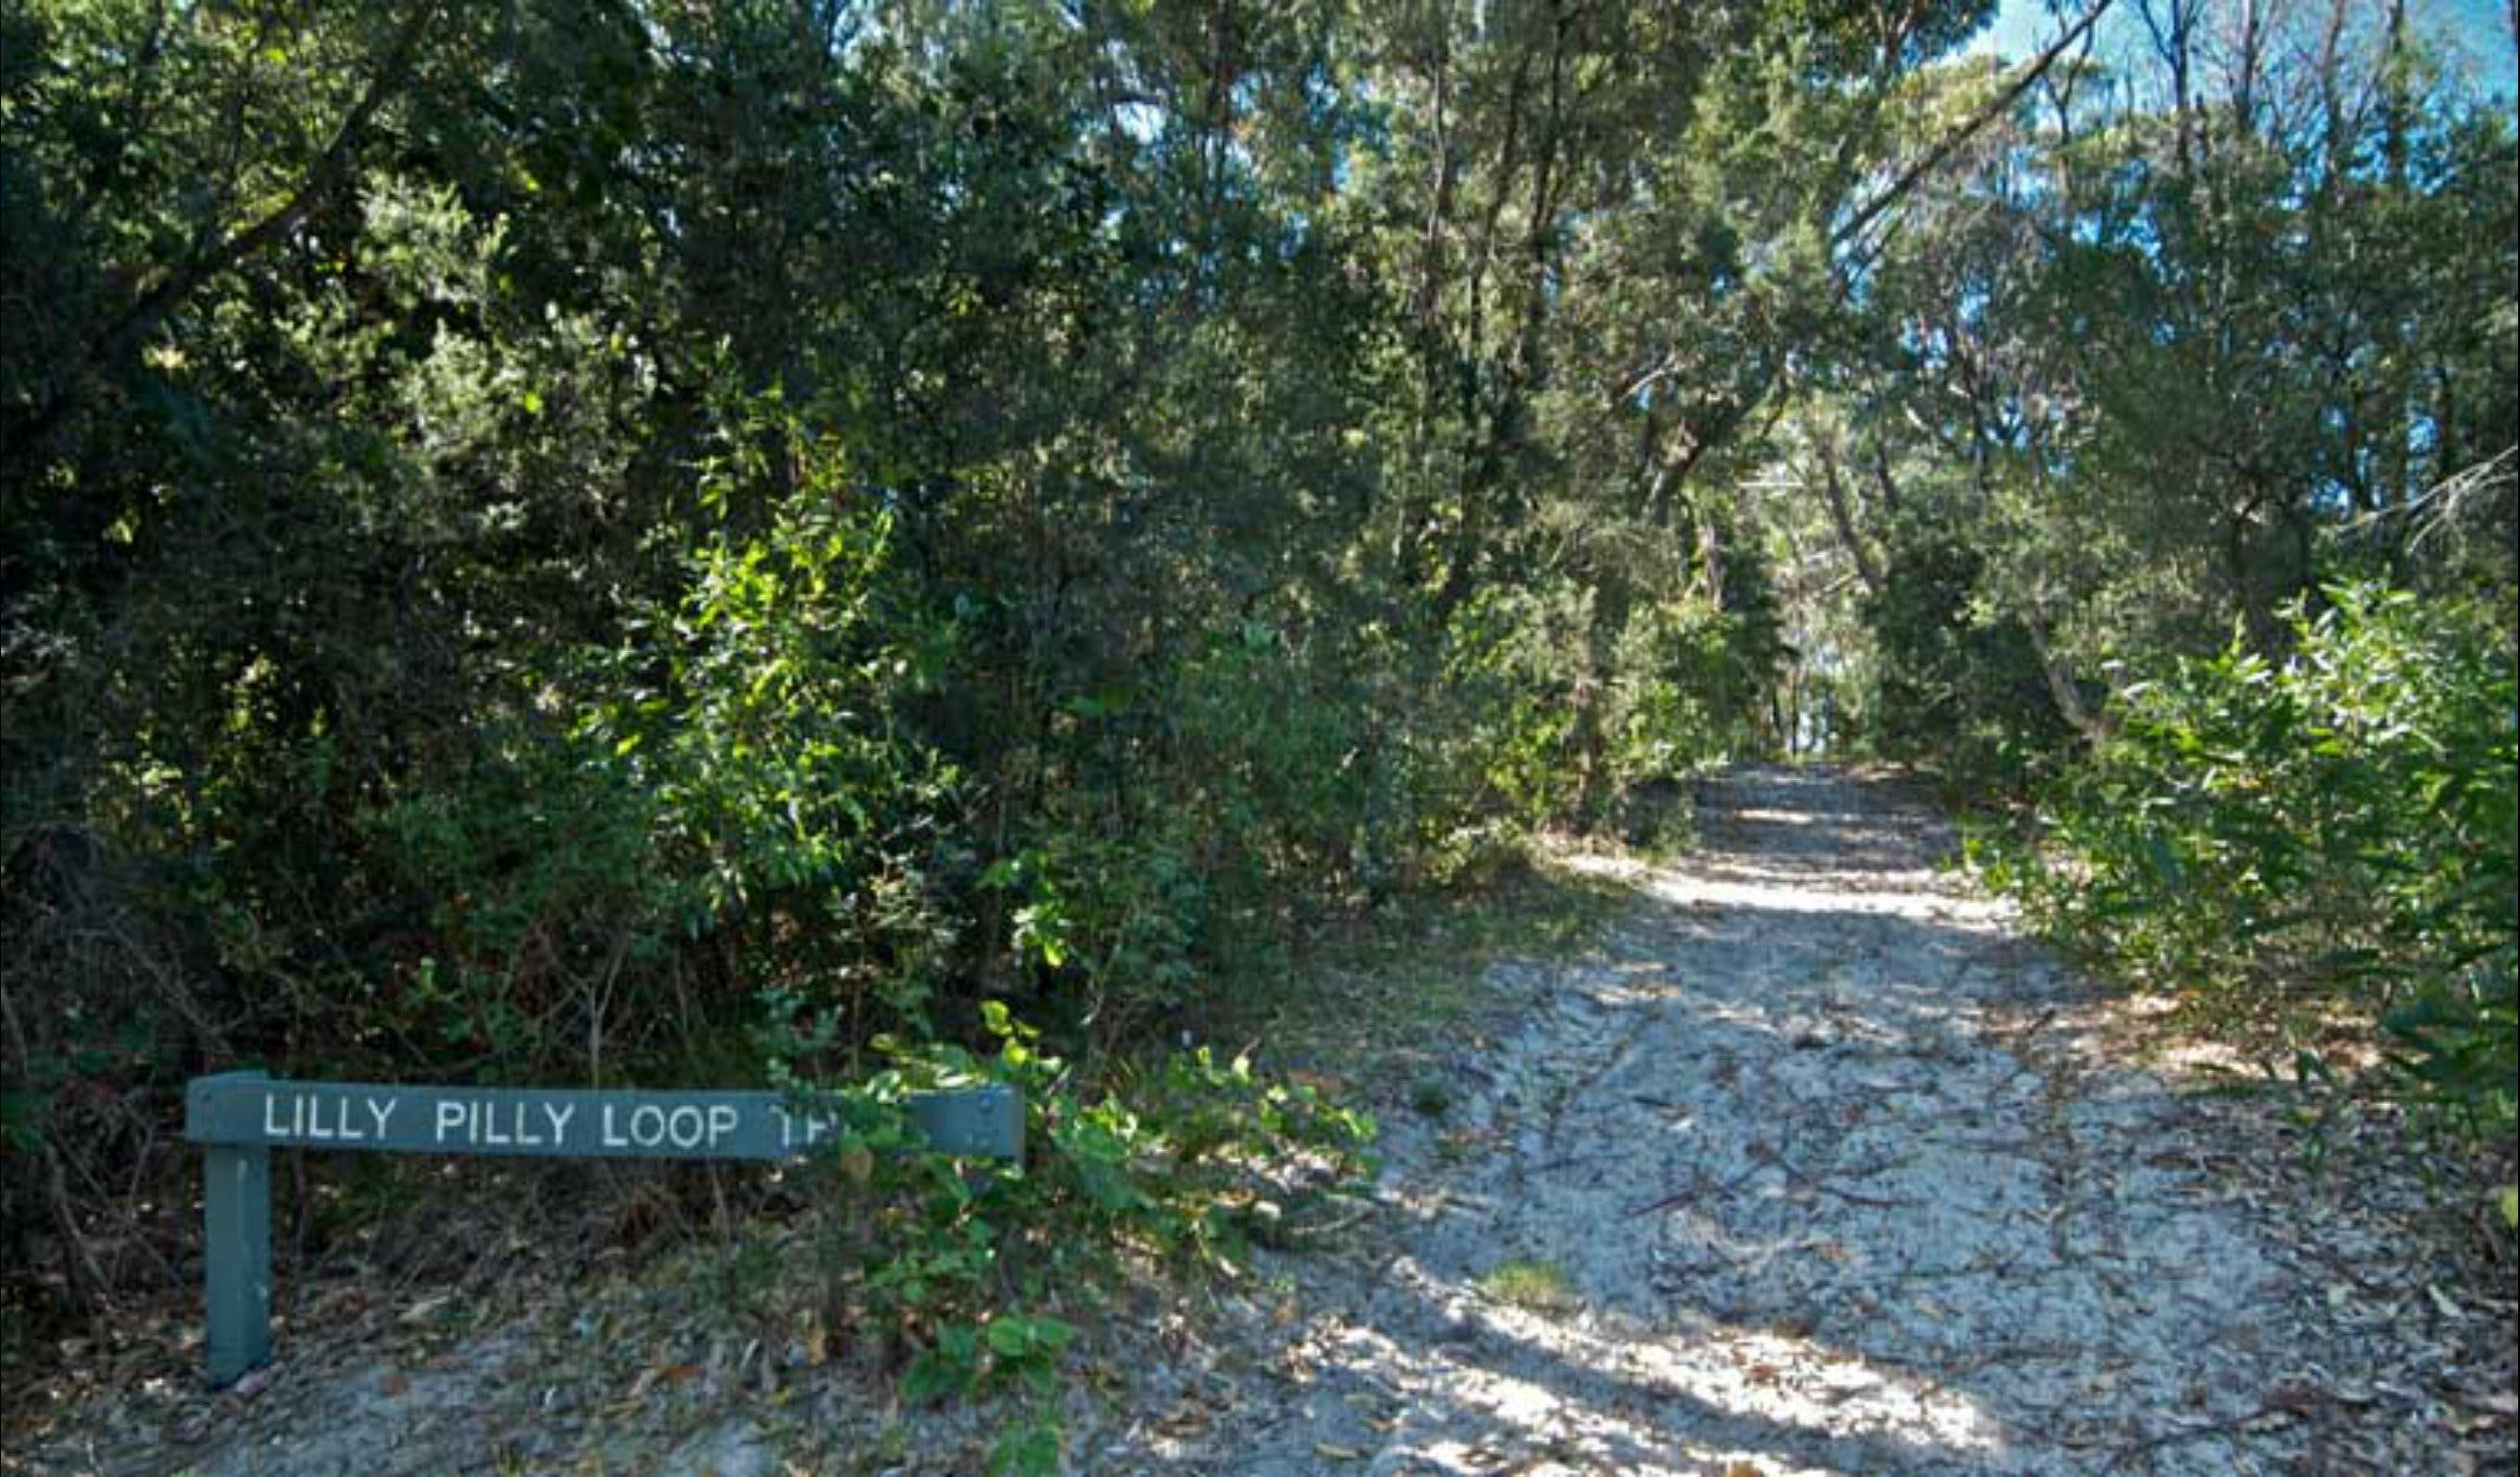 Lillypilly loop trail - Accommodation Perth